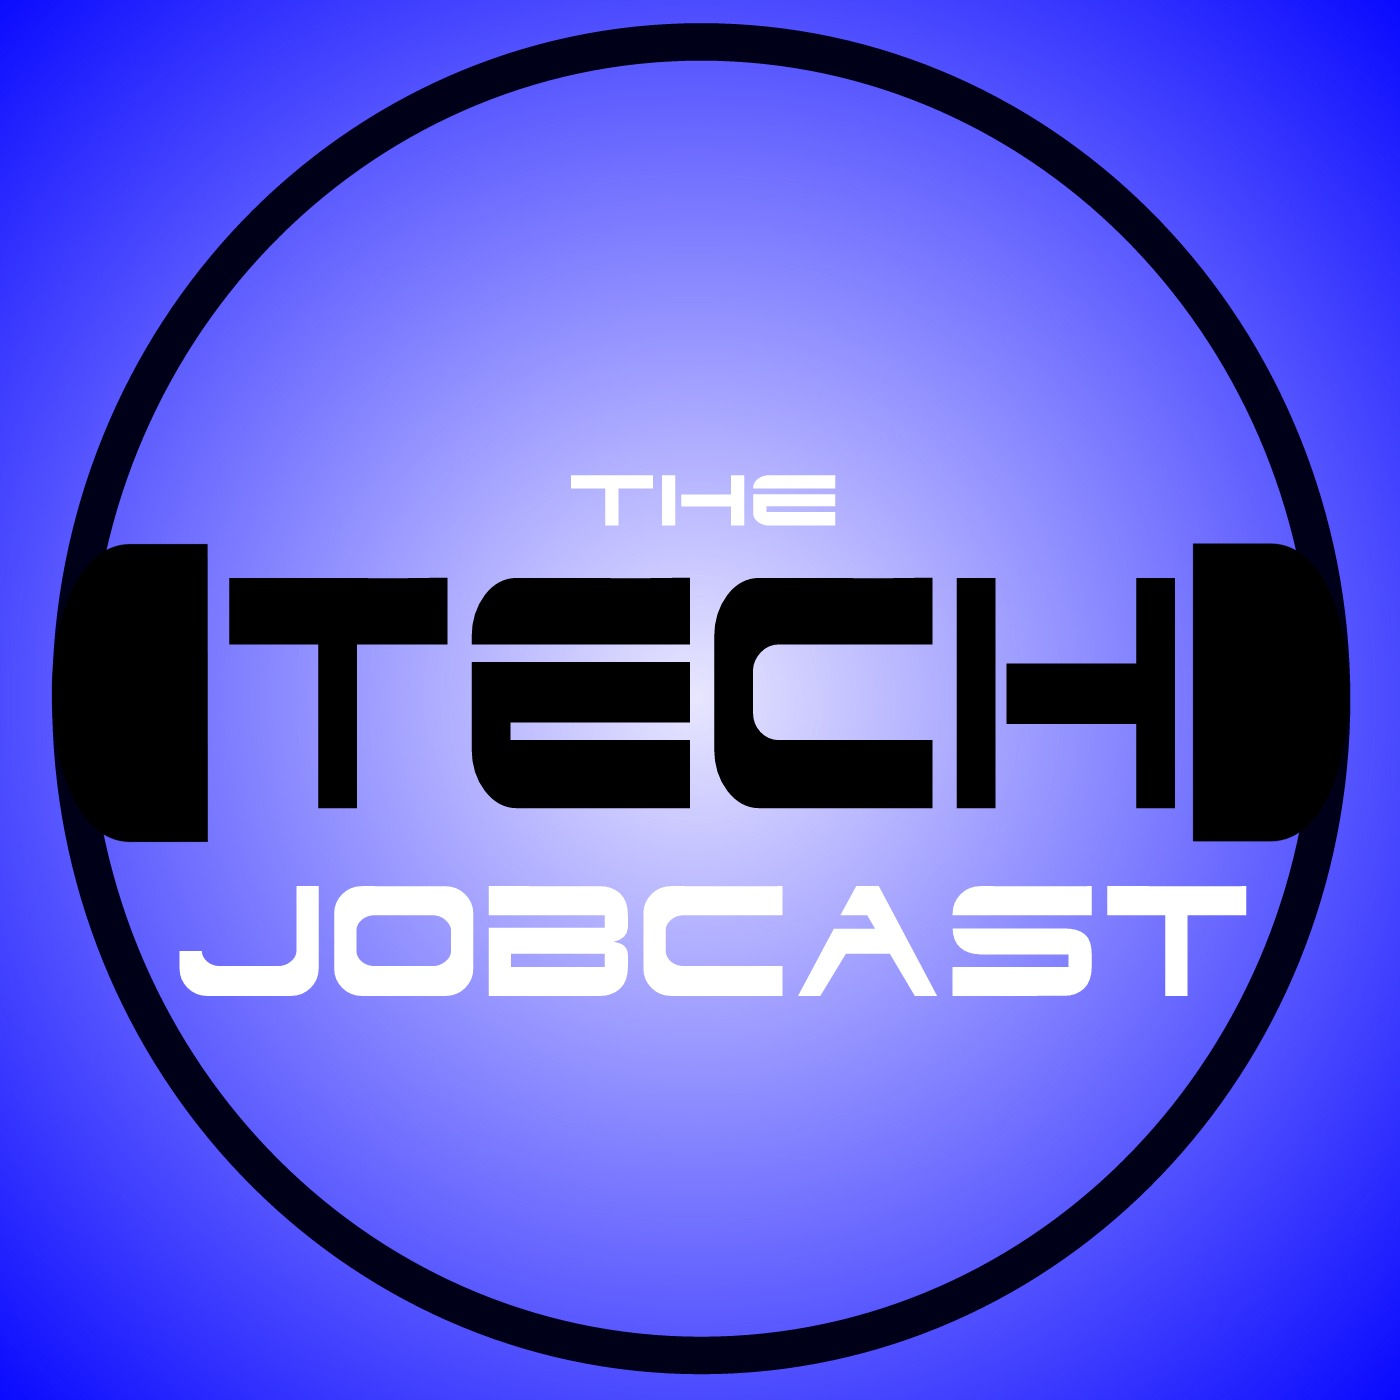 IT Job listings for the week of March 18, 2018